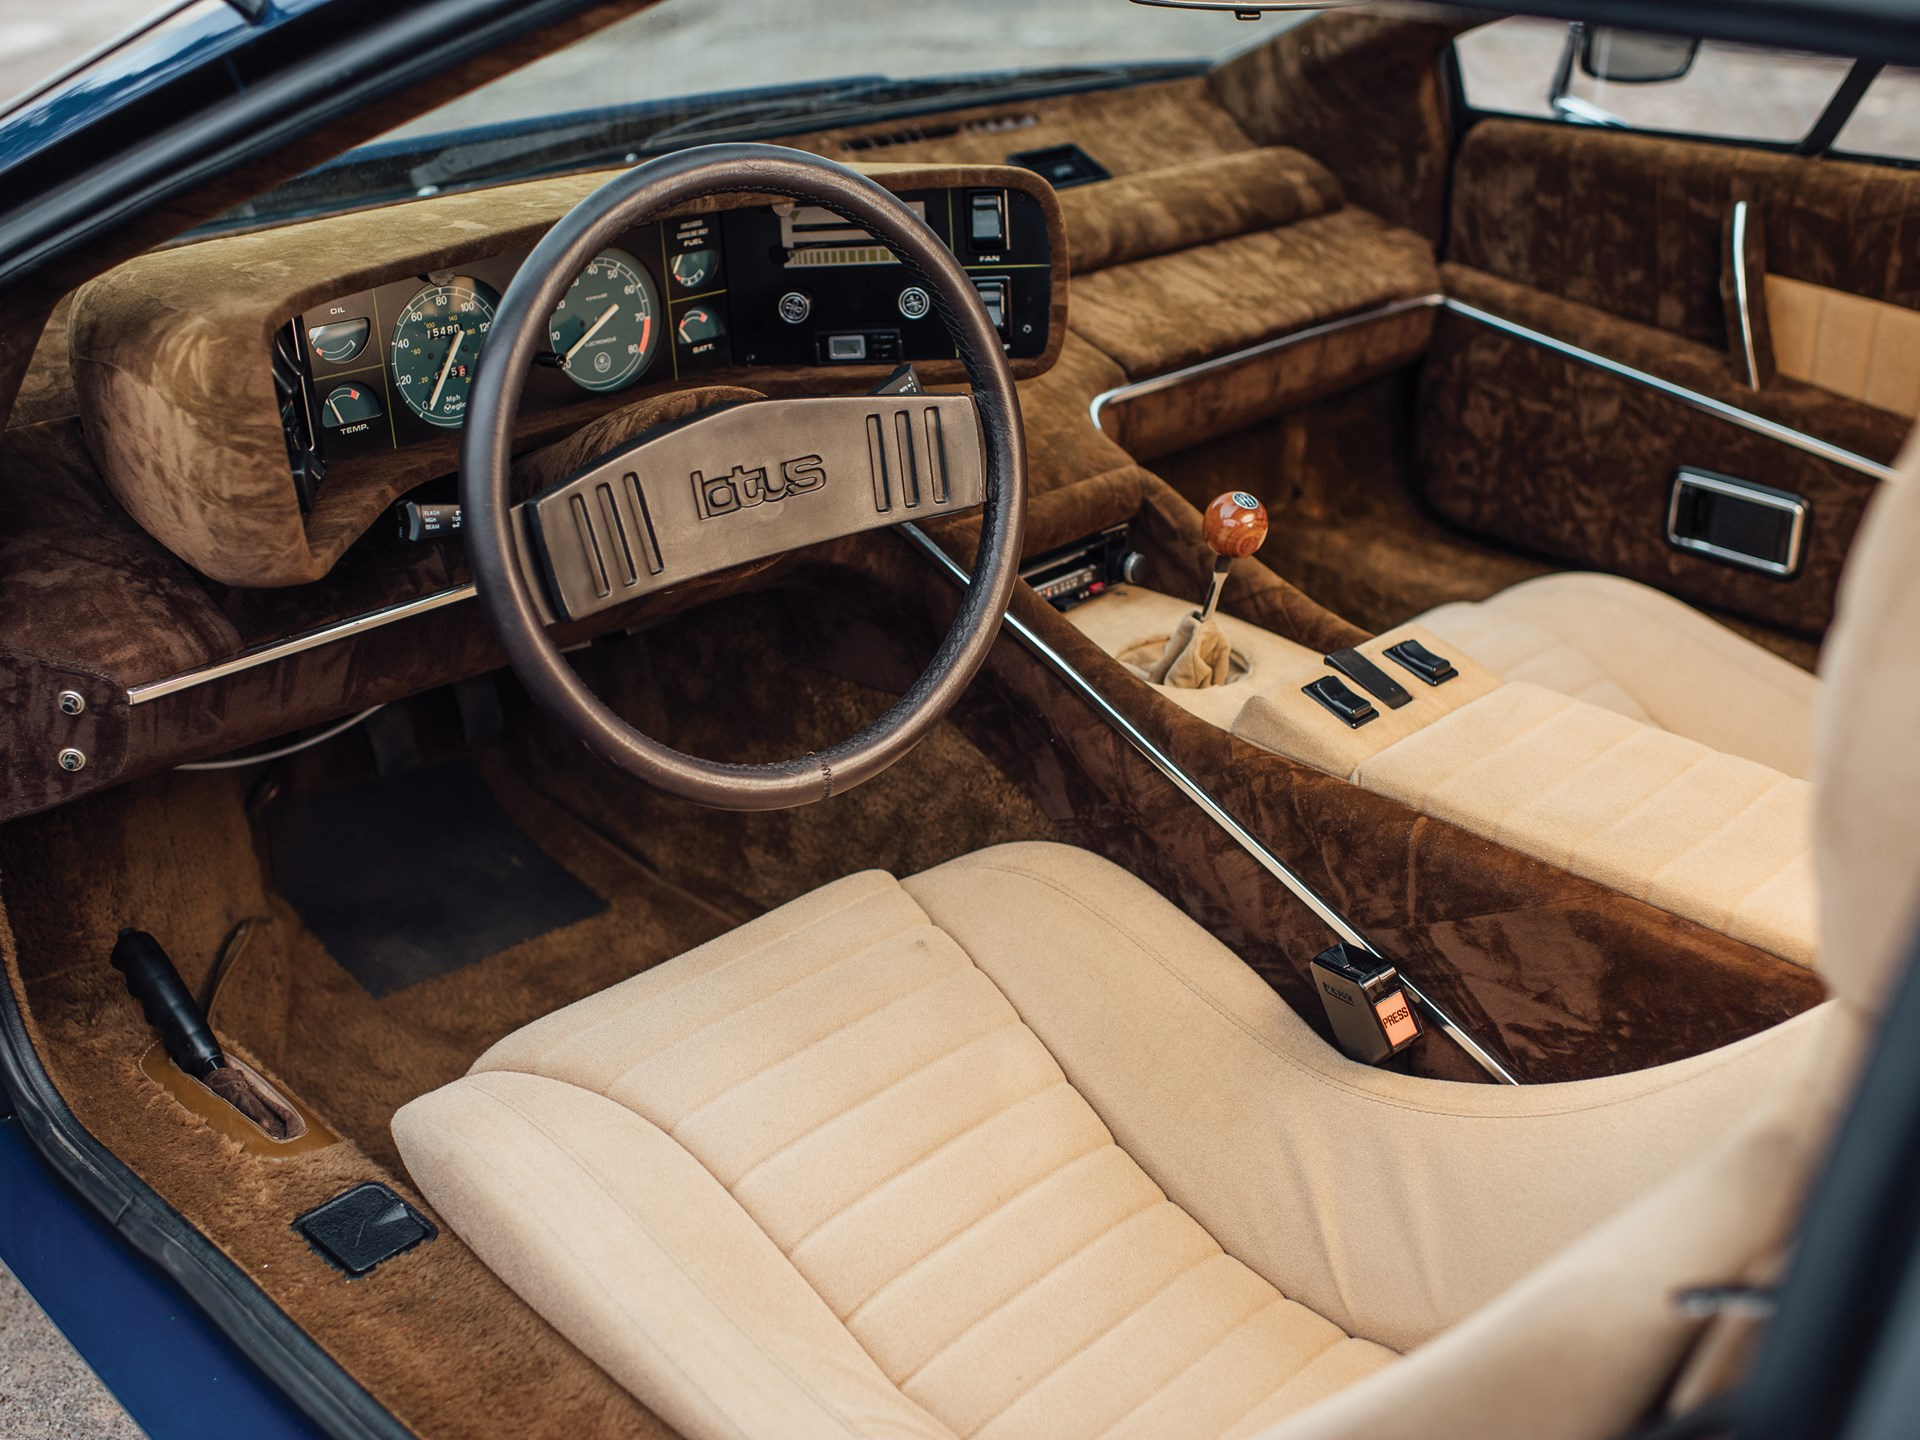 1977 Lotus Esprit Series 1 interior driver